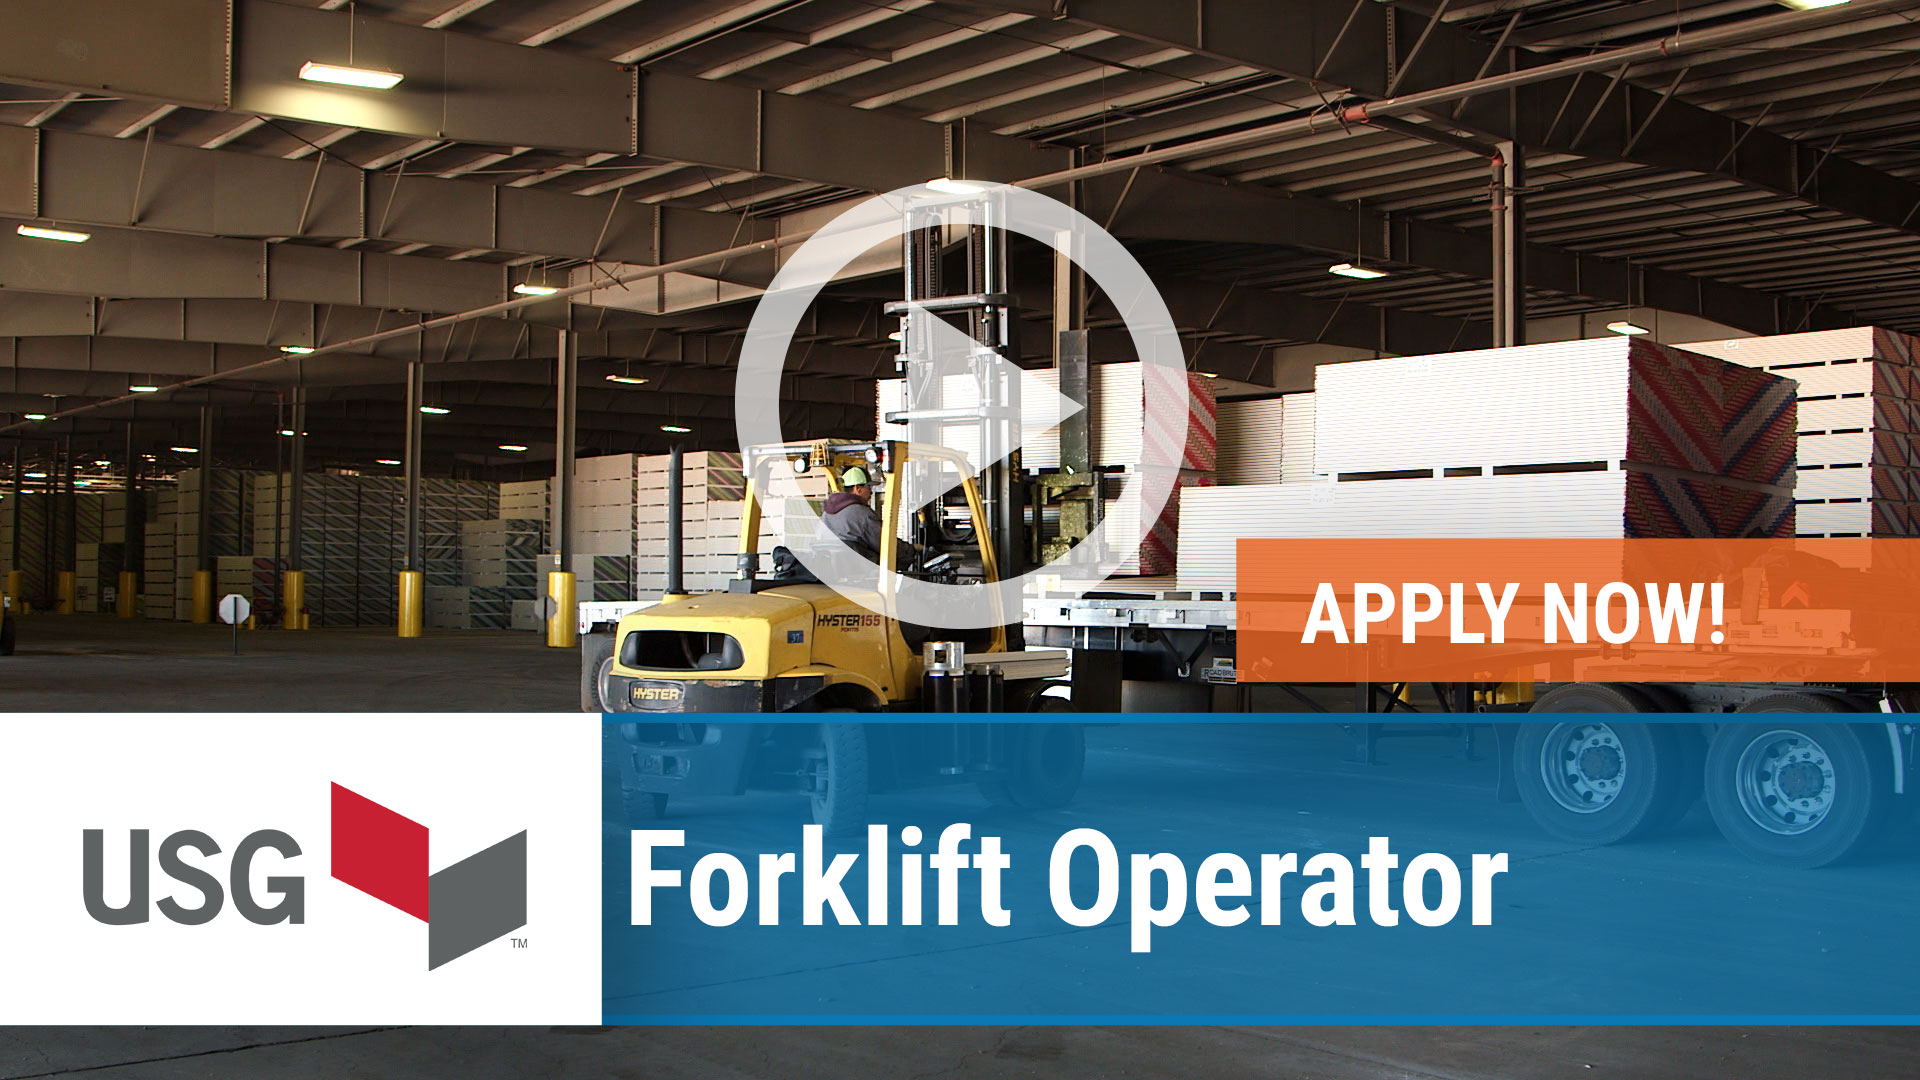 Watch our careers video for available job opening Forklift Operator in Westlake, OH, USA